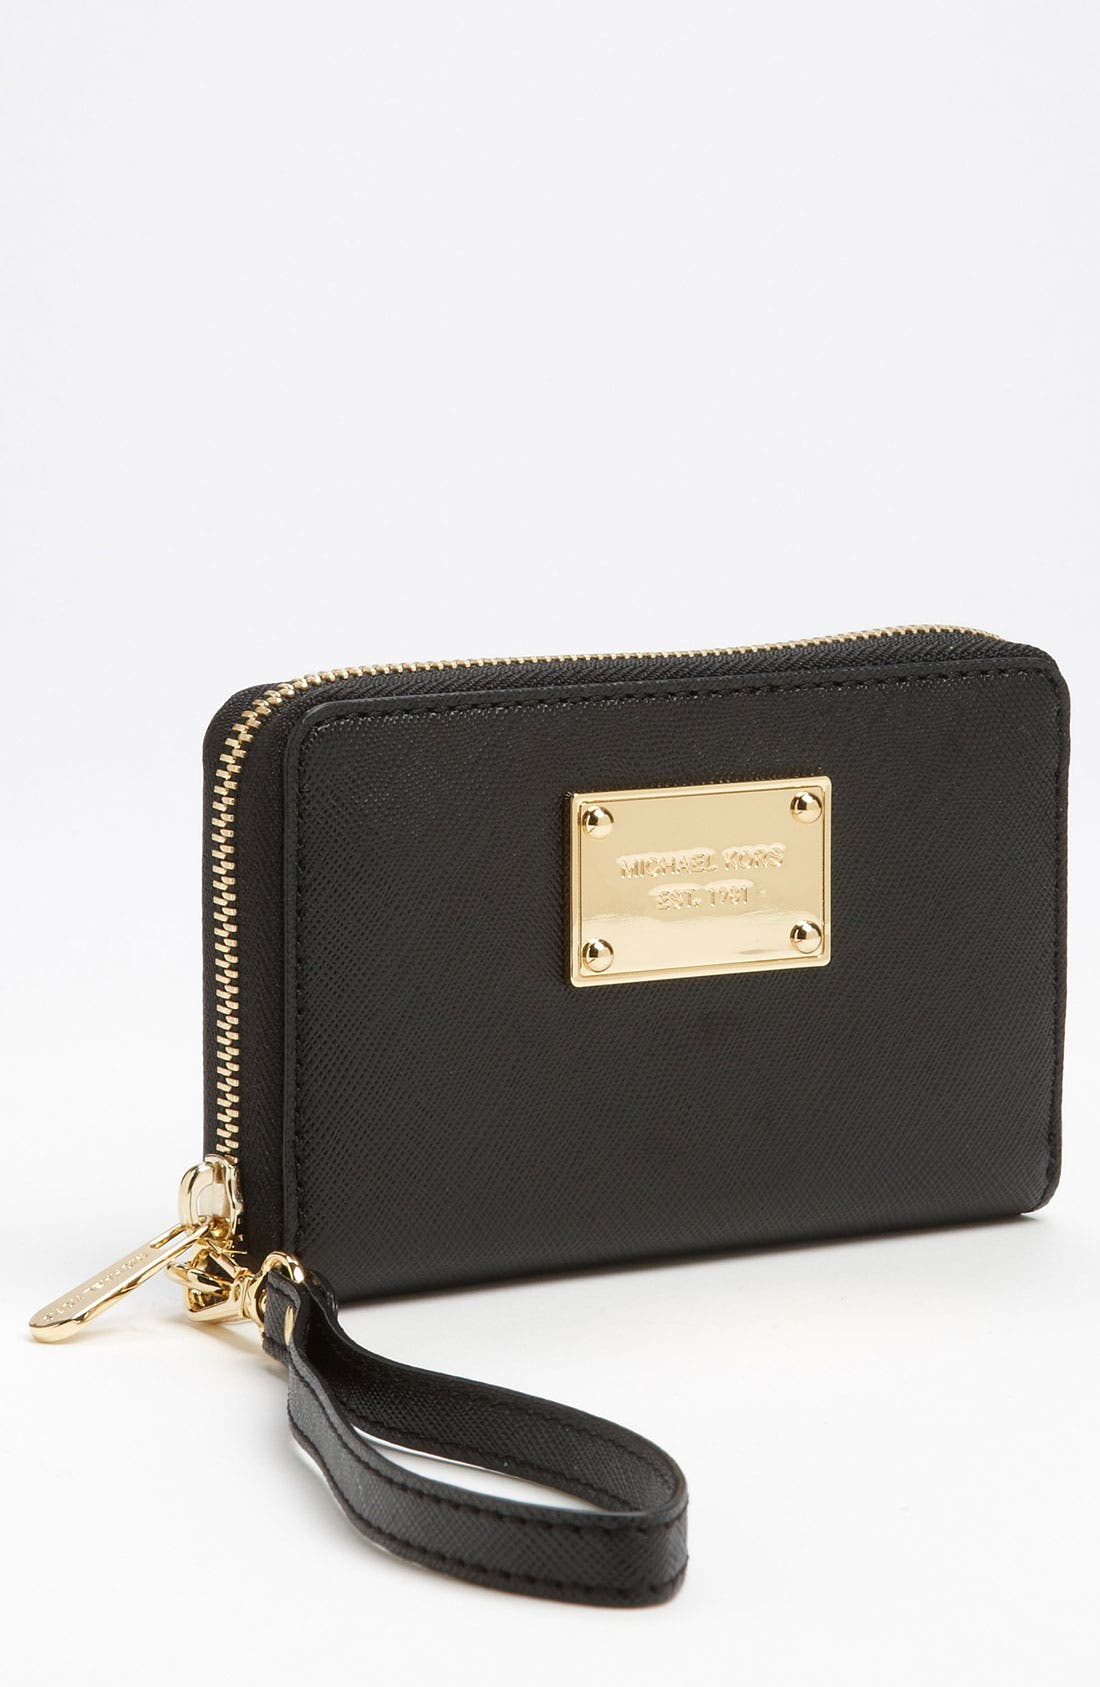 Alternate Image 1 Selected - MICHAEL Michael Kors Saffiano Phone Wristlet